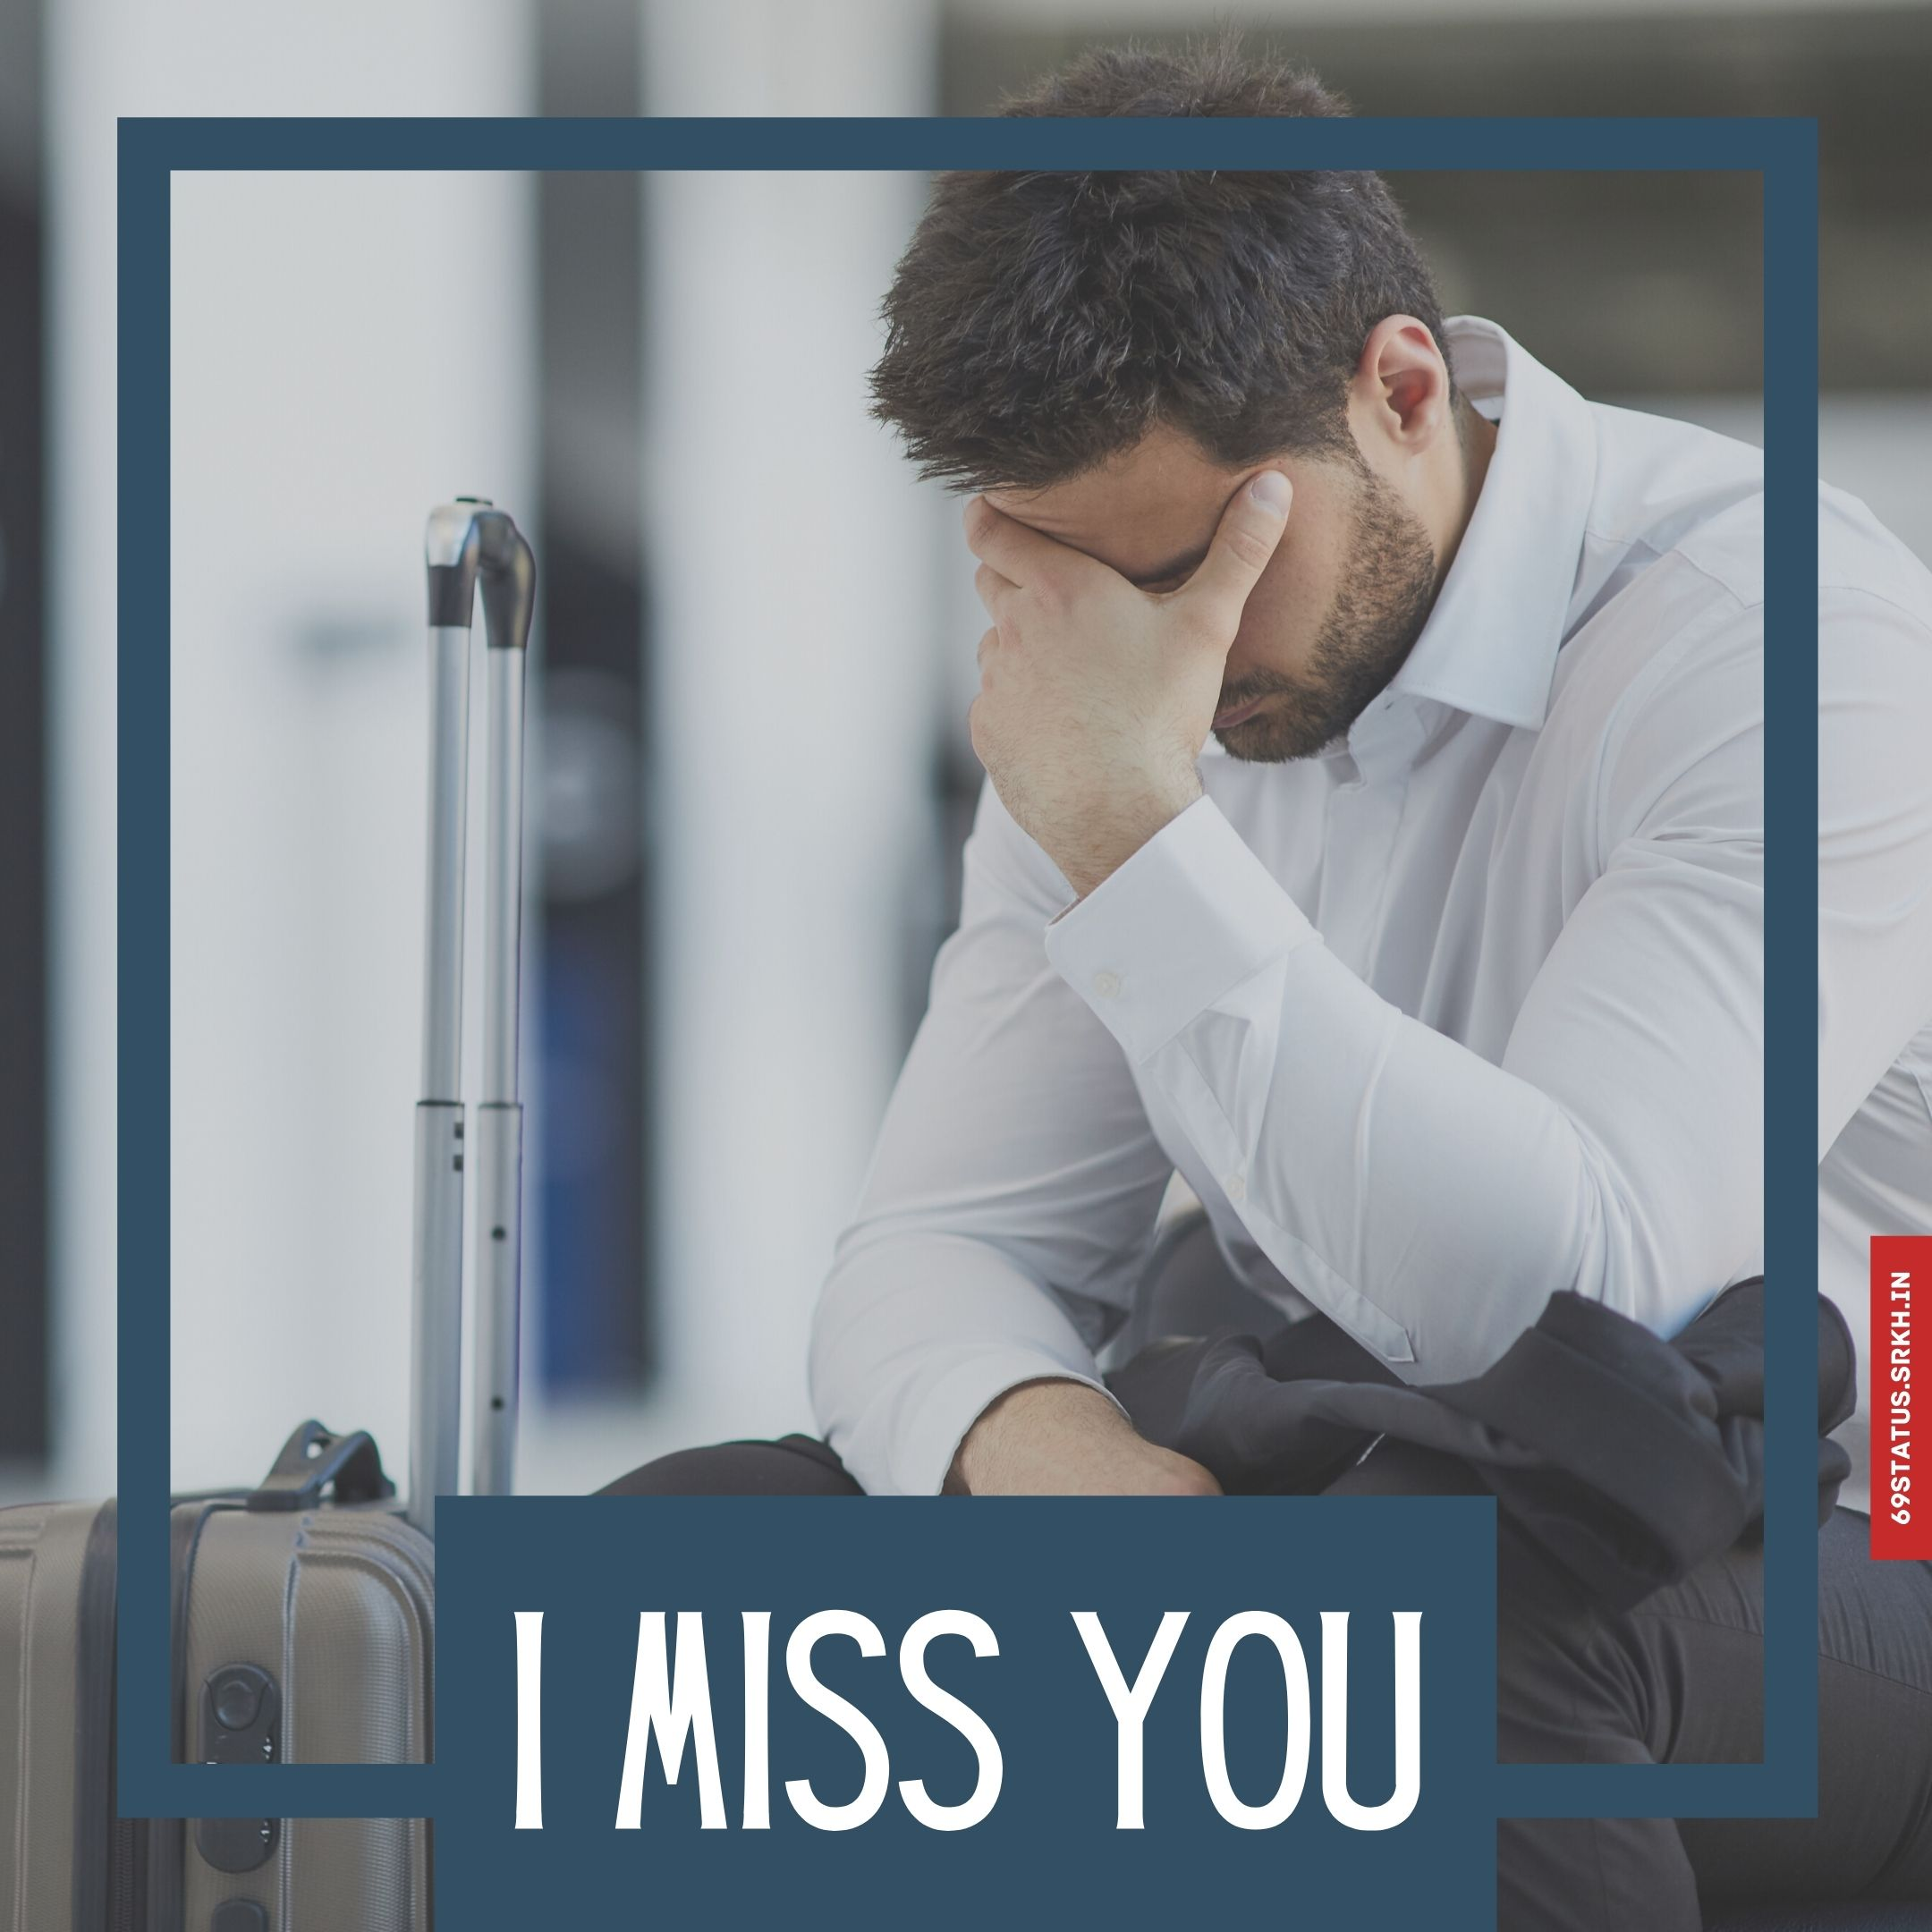 Www I miss you image full HD free download.